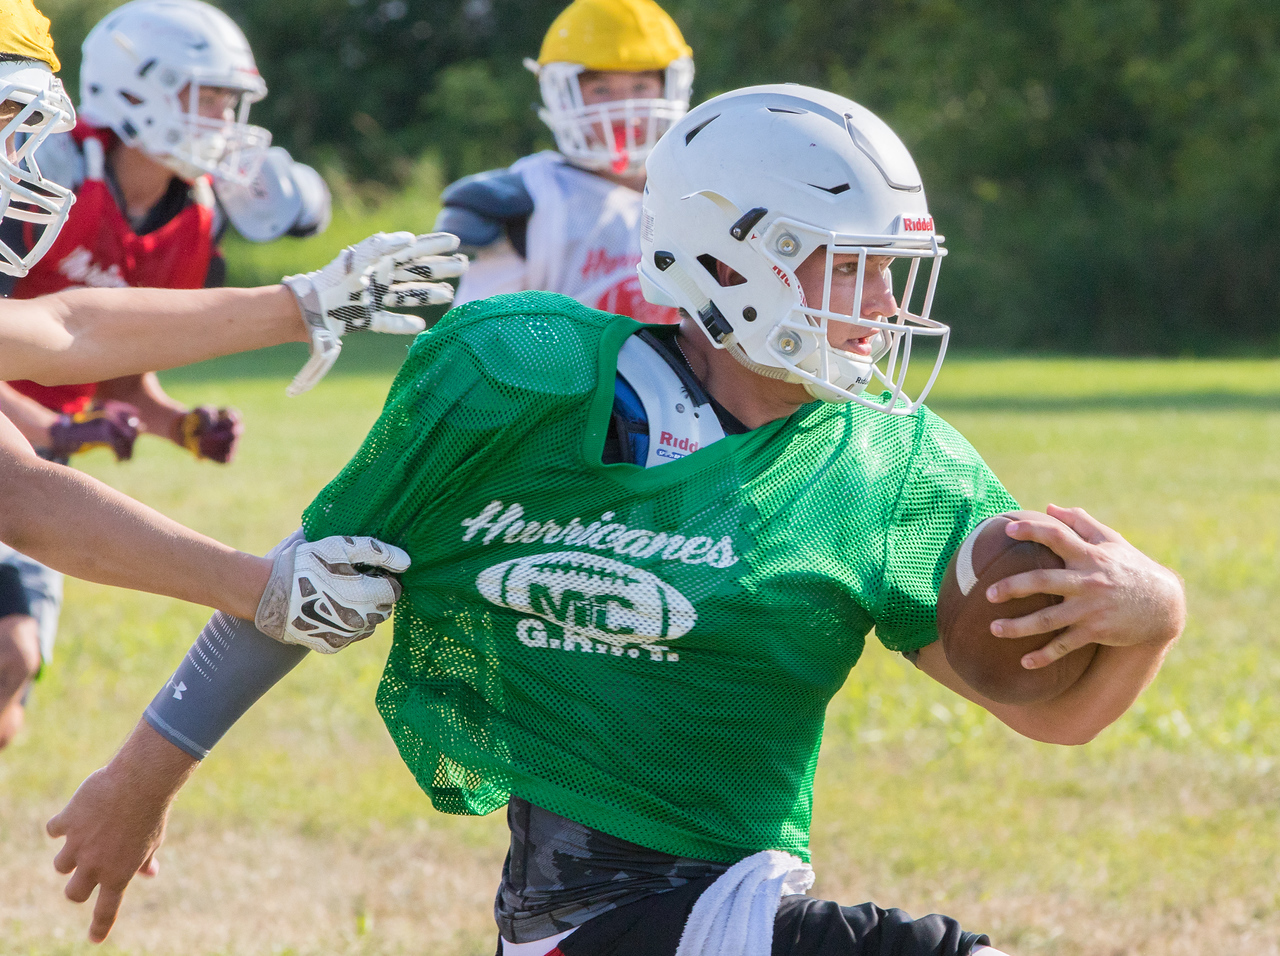 Marion Central Catholic High School's quarterback Gavin Scott runs through the defense during practice Wednesday, August 9, 2017 at Marion Central High School in Woodstock. Ken Koontz – For Shaw Media